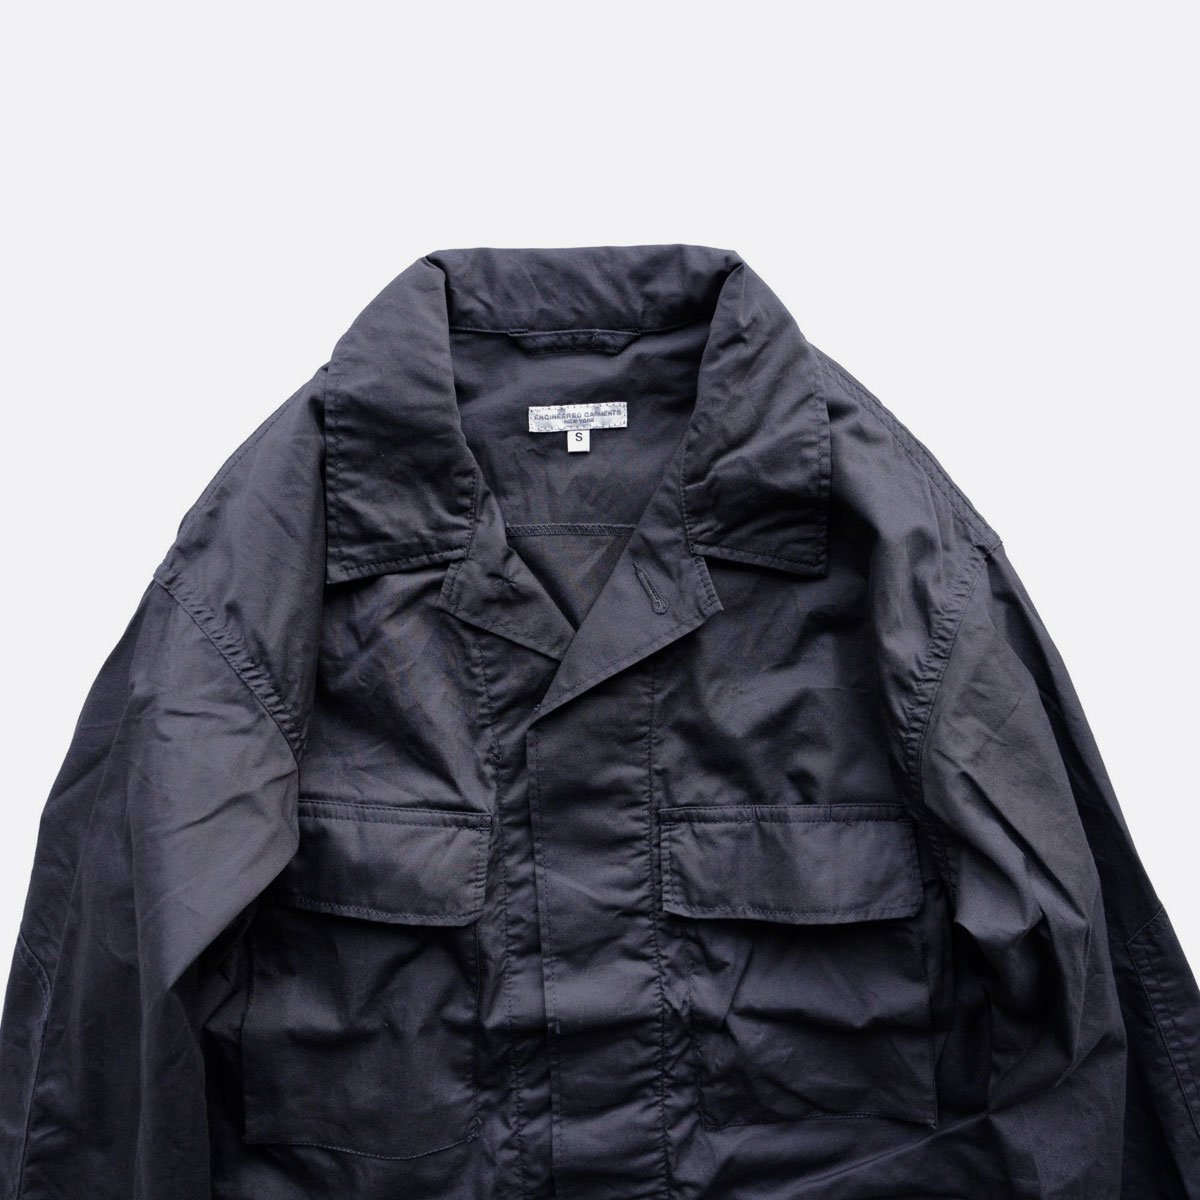 Engineered Garments BDU JACKET - HIGH COUNT TWILL  (Dk.Navy)4